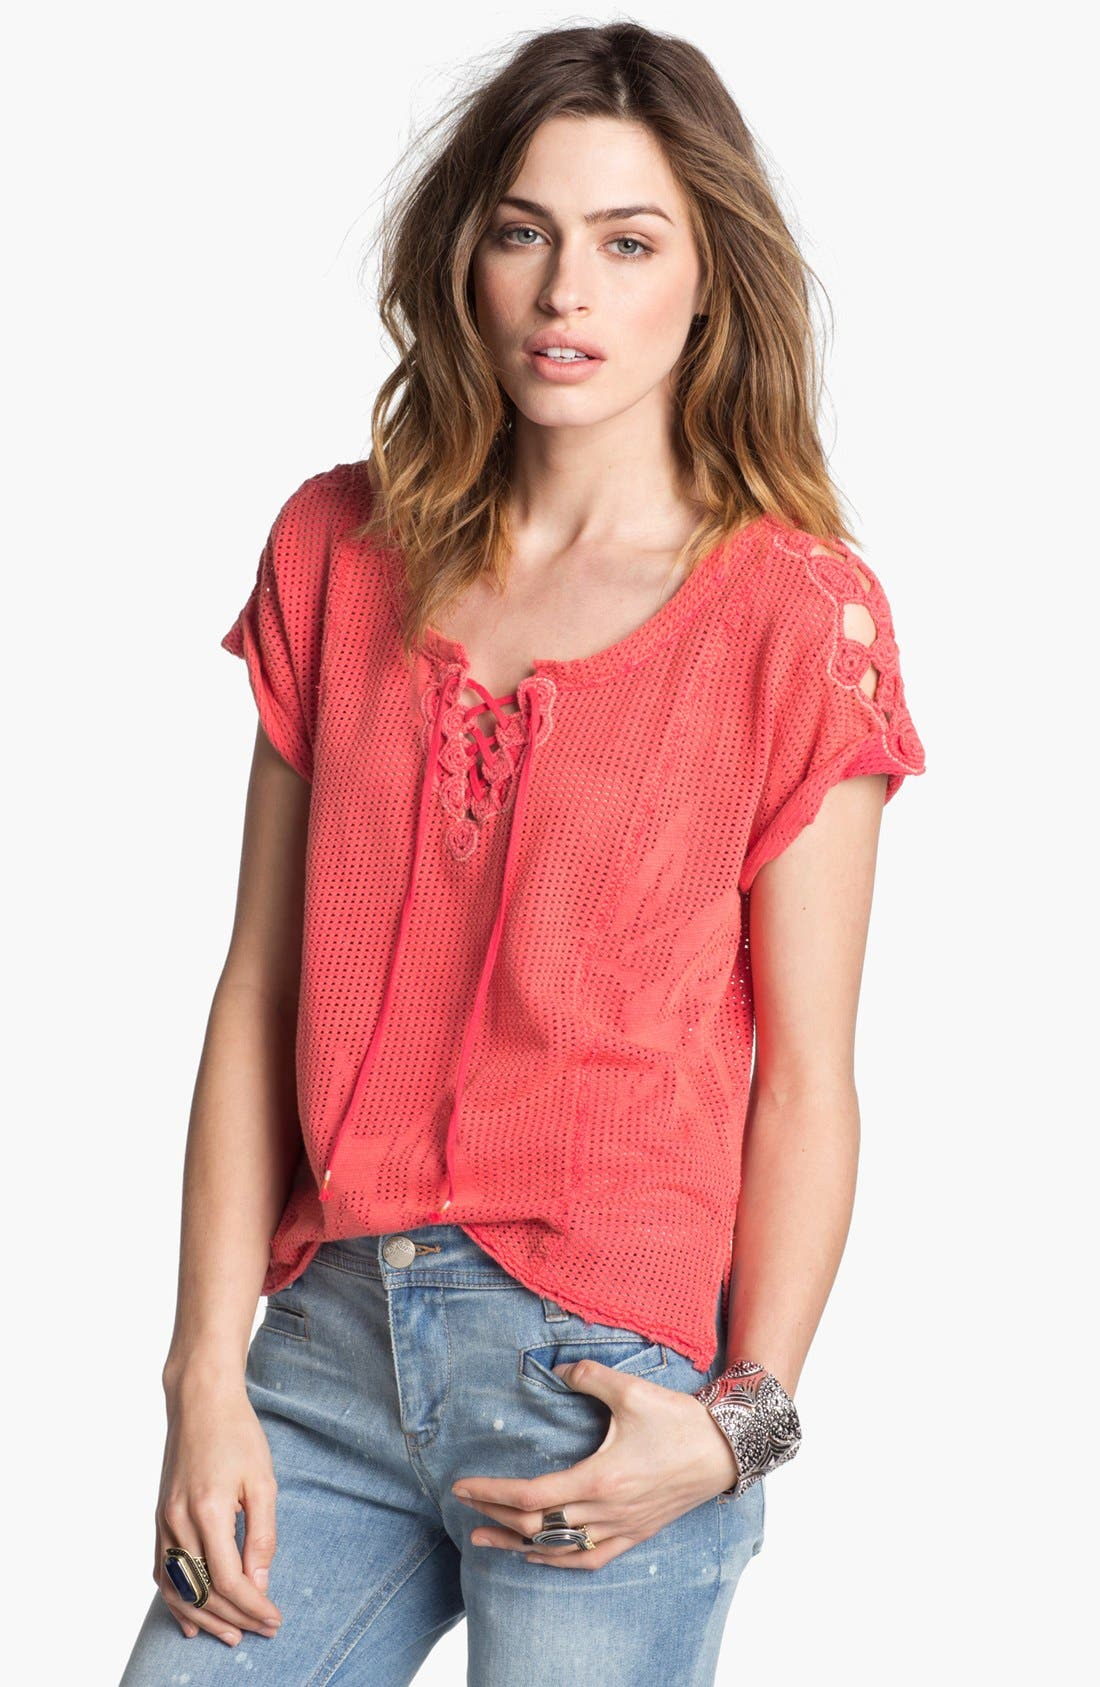 Main Image - Free People 'Strawberry Fields' Lace Neck Mesh Top